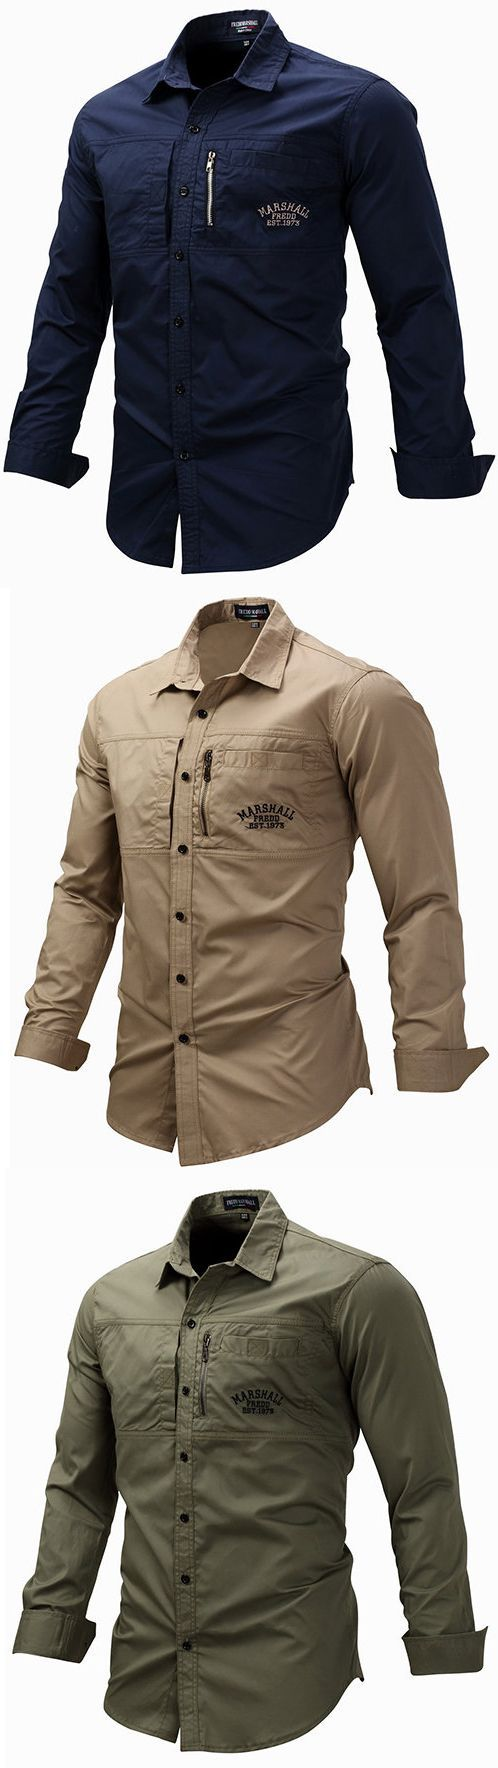 US$22.99#Casual Stylish Chest Pockets Loose Fit Work Shirts for Men